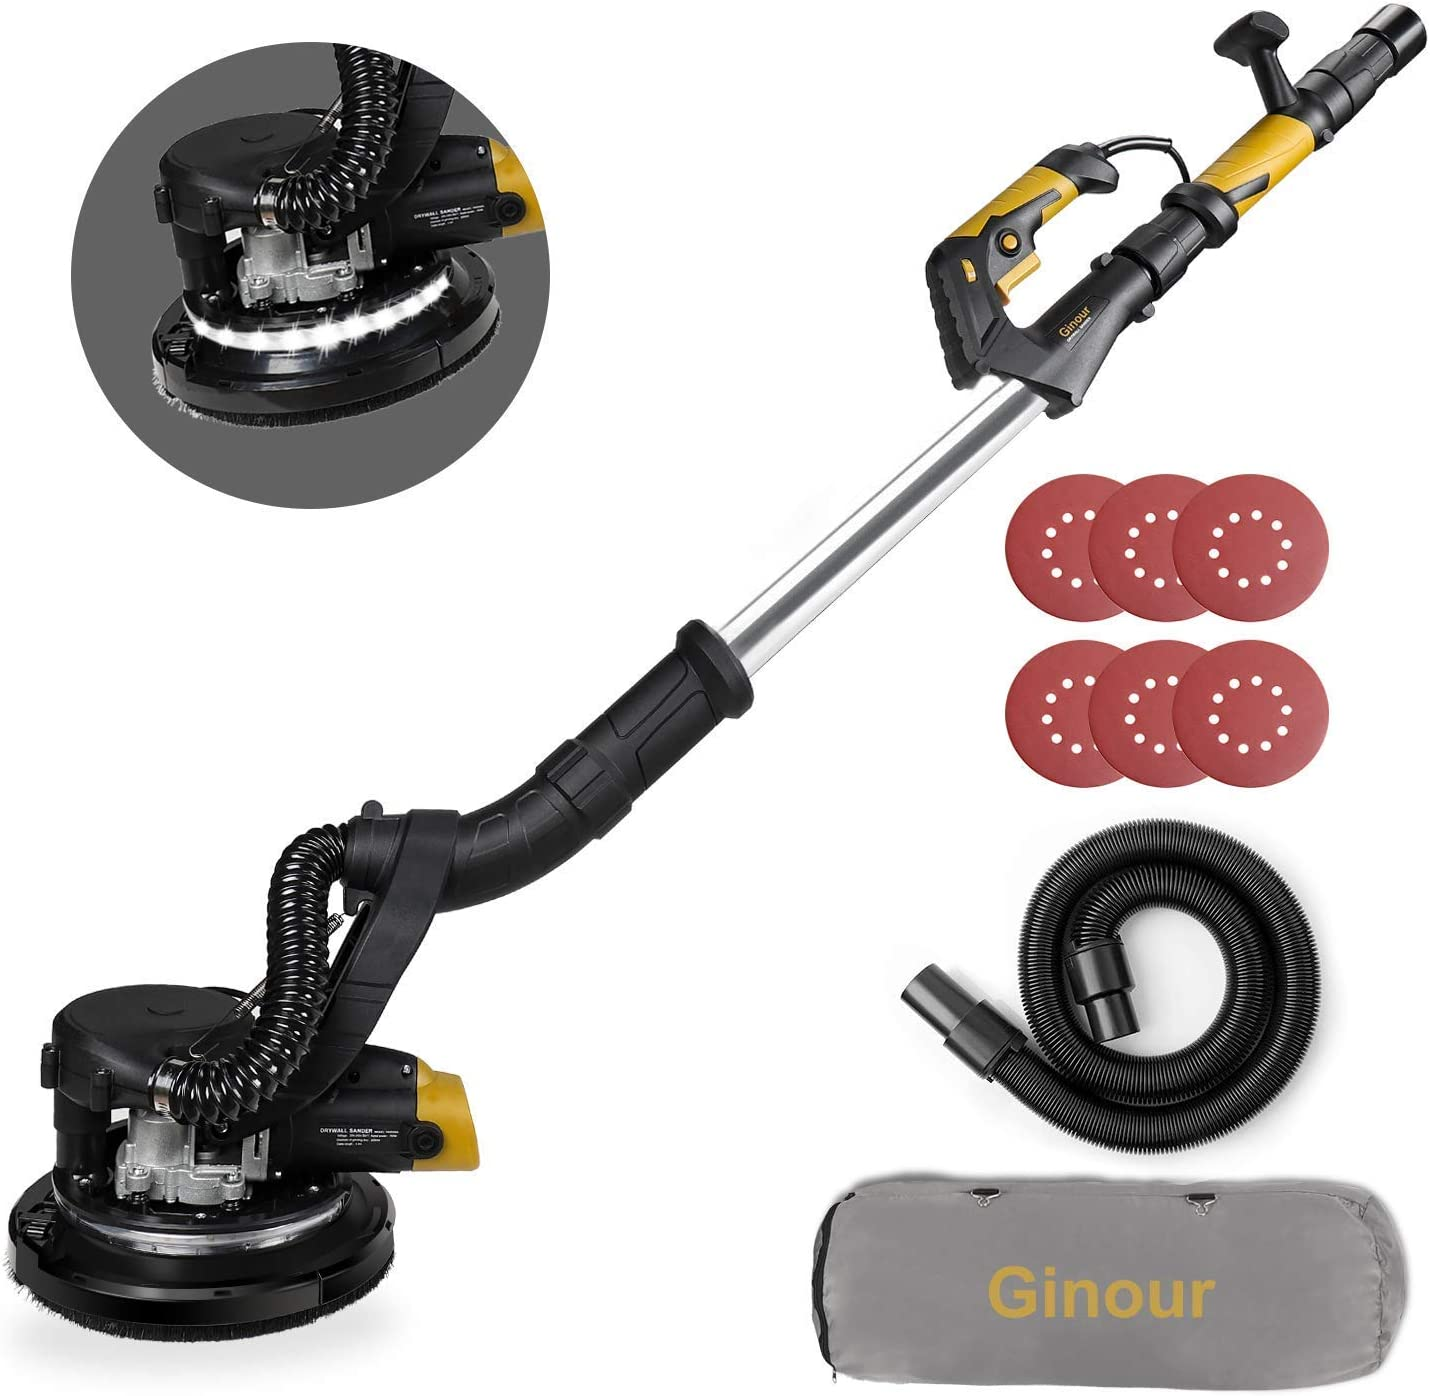 Ginour 6A Electric Drywall Sander With Vacuum Attachment, Variable Speed & LED Light, Extendable Handle, Long Dust Hose, Storage Bag, 6 Sanding Discs